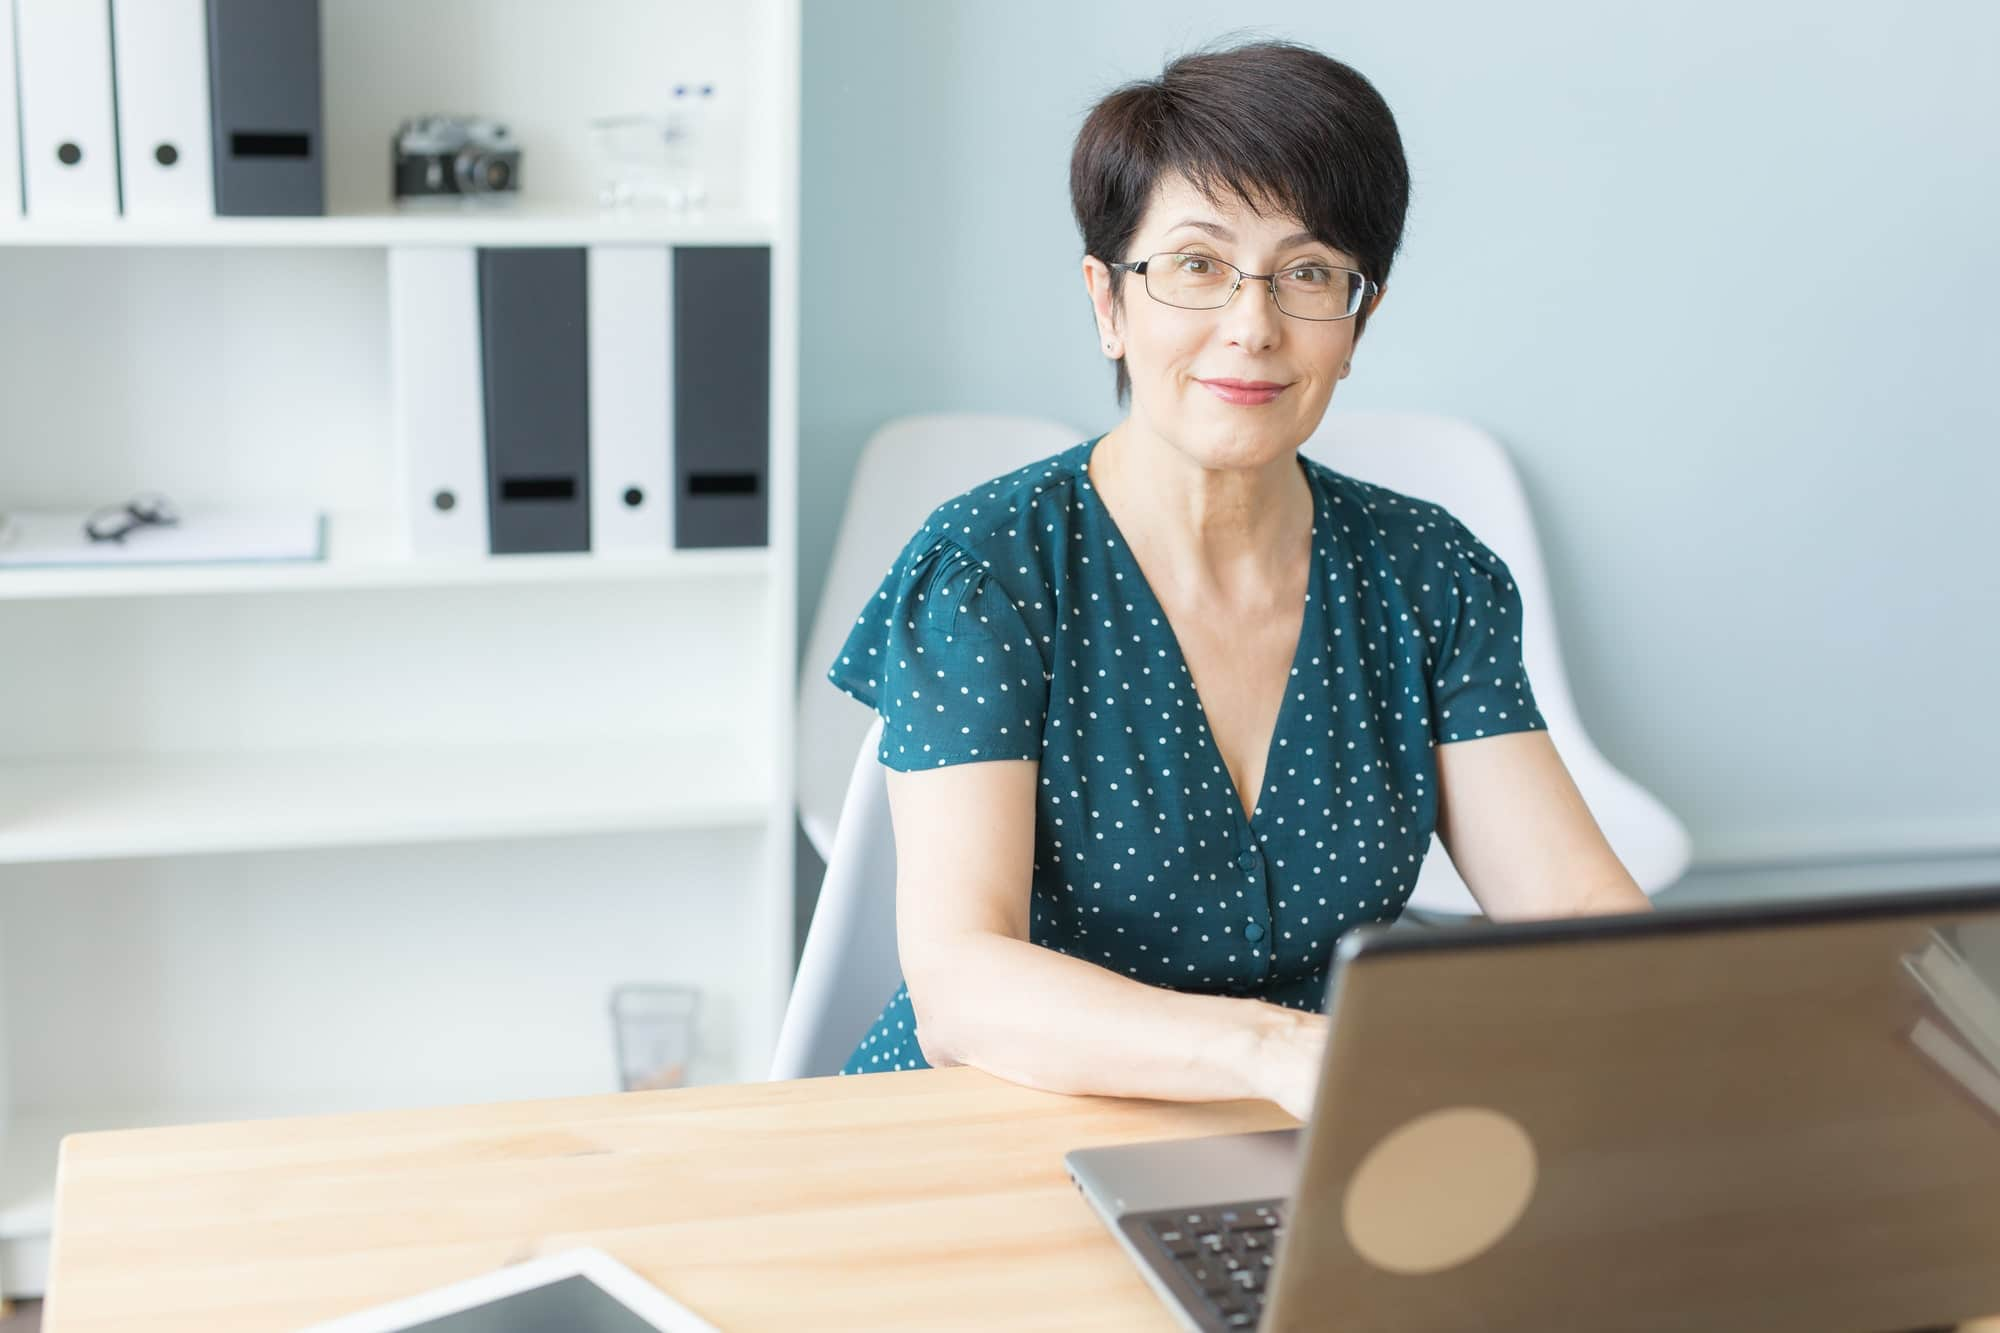 Business, technology and people concept - middle aged woman work in office and use a laptop